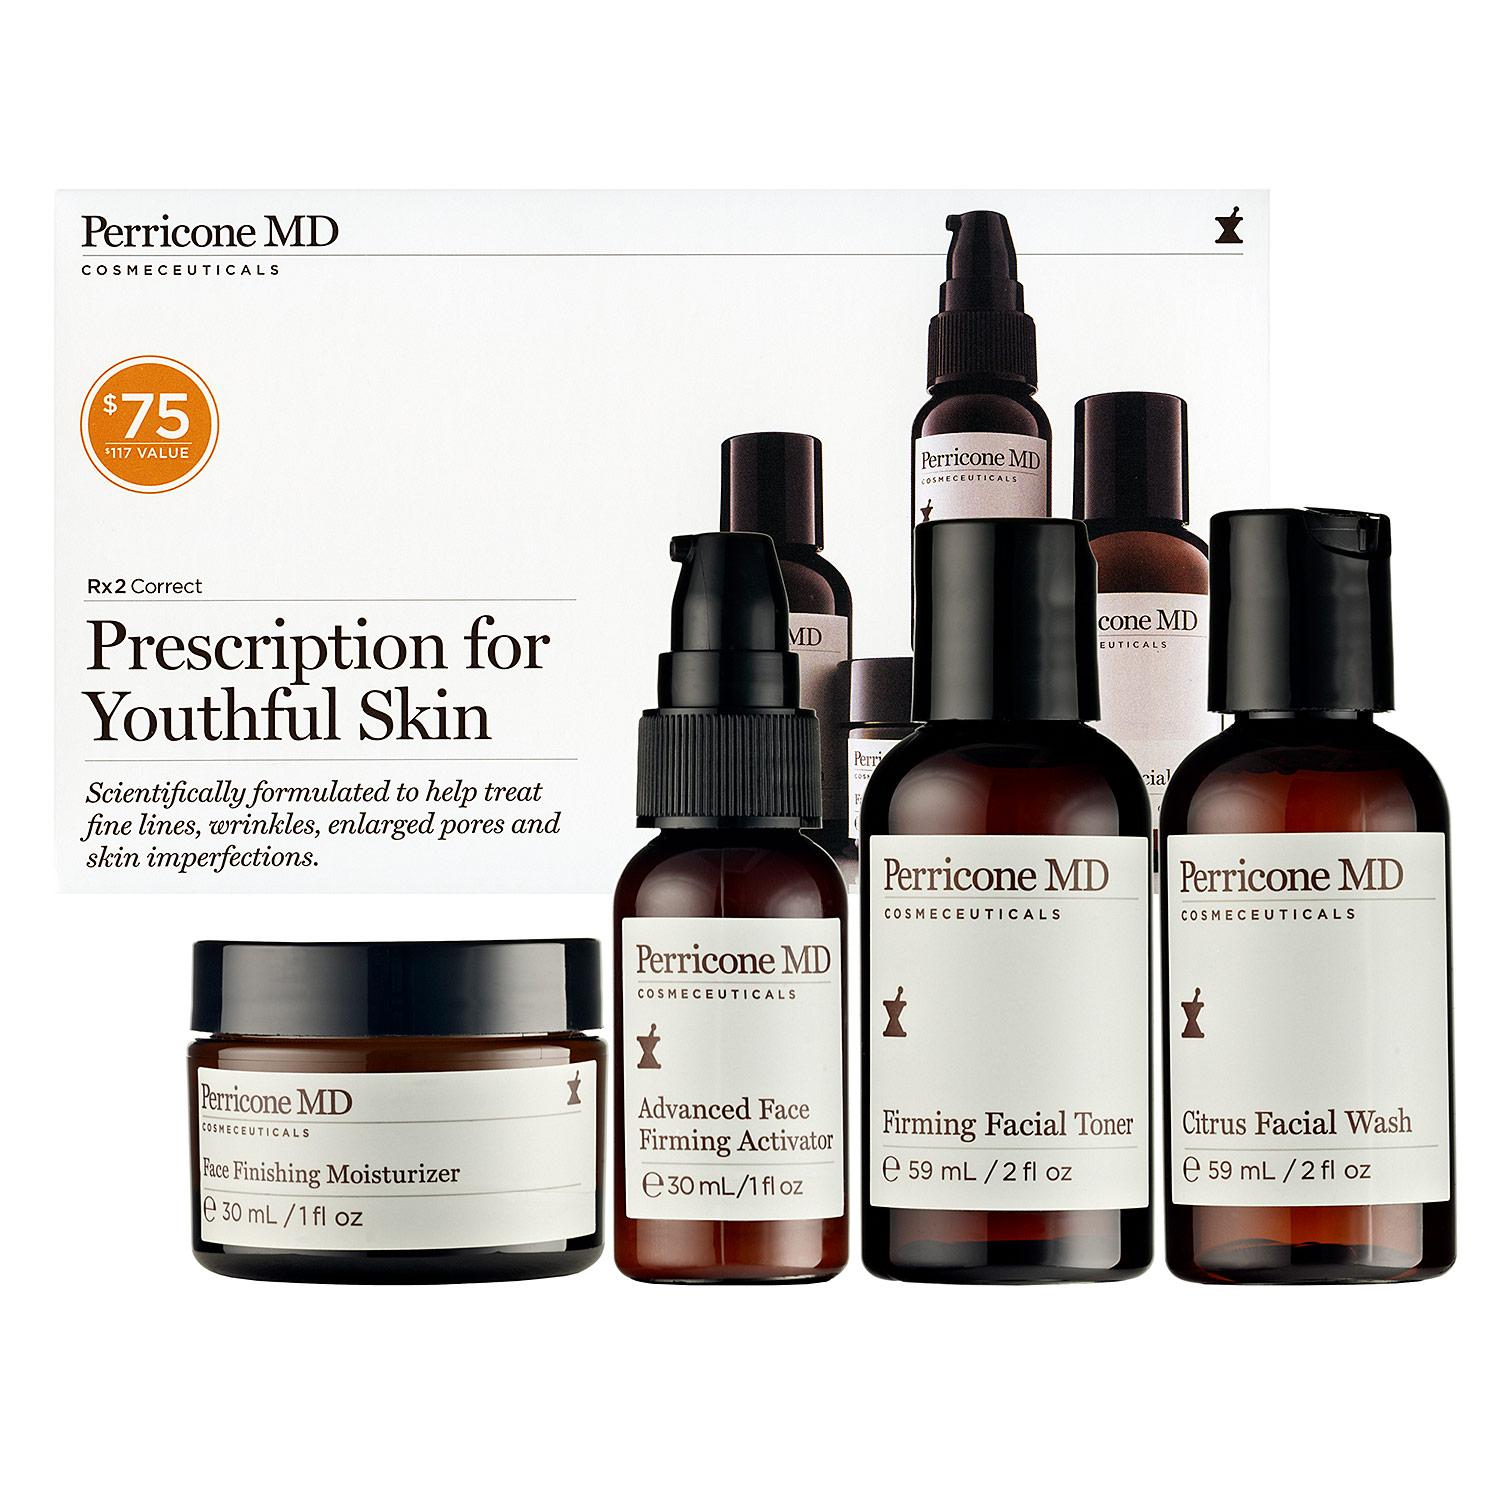 Prescription for Youthful Skin